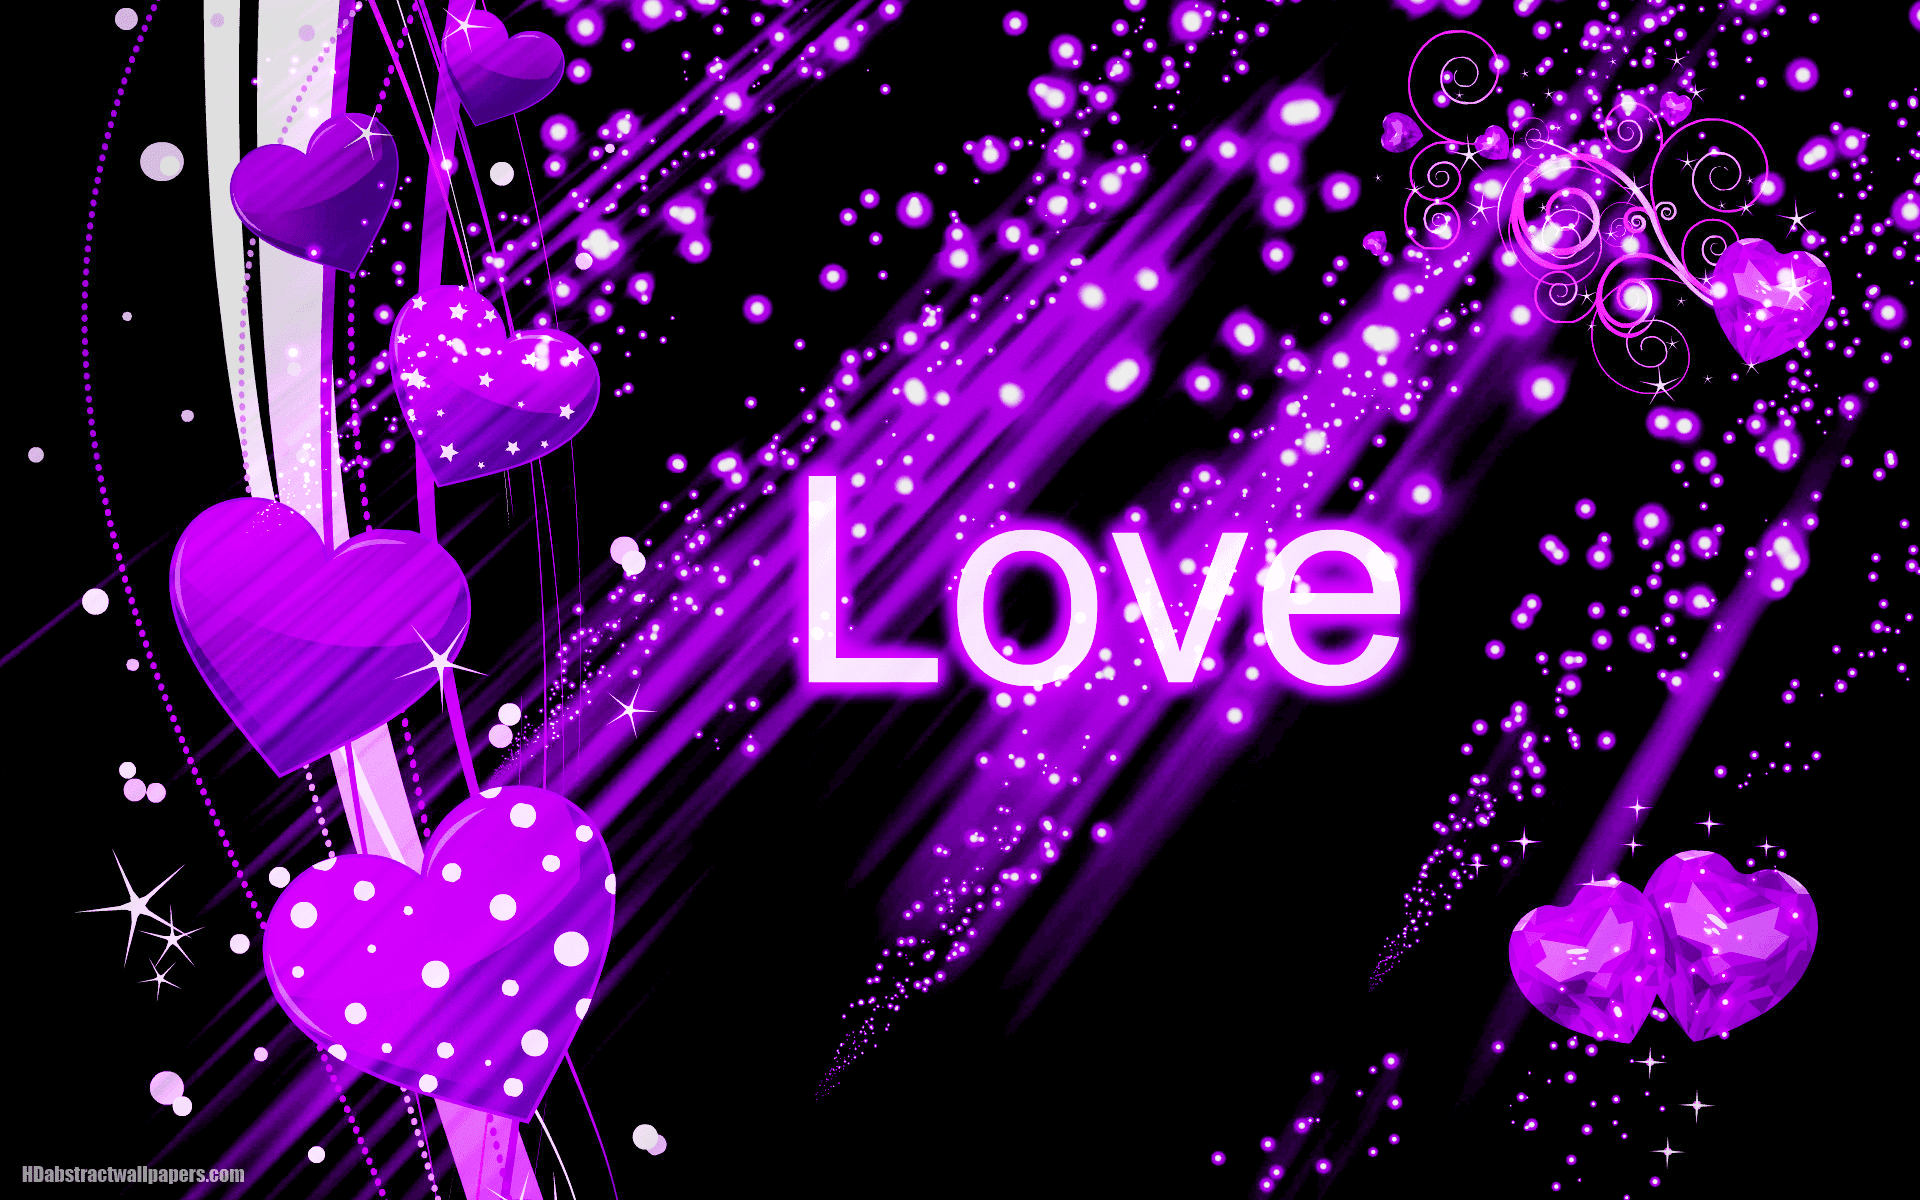 Black abstract wallpaper with purple love hearts HD Abstract Wallpapers